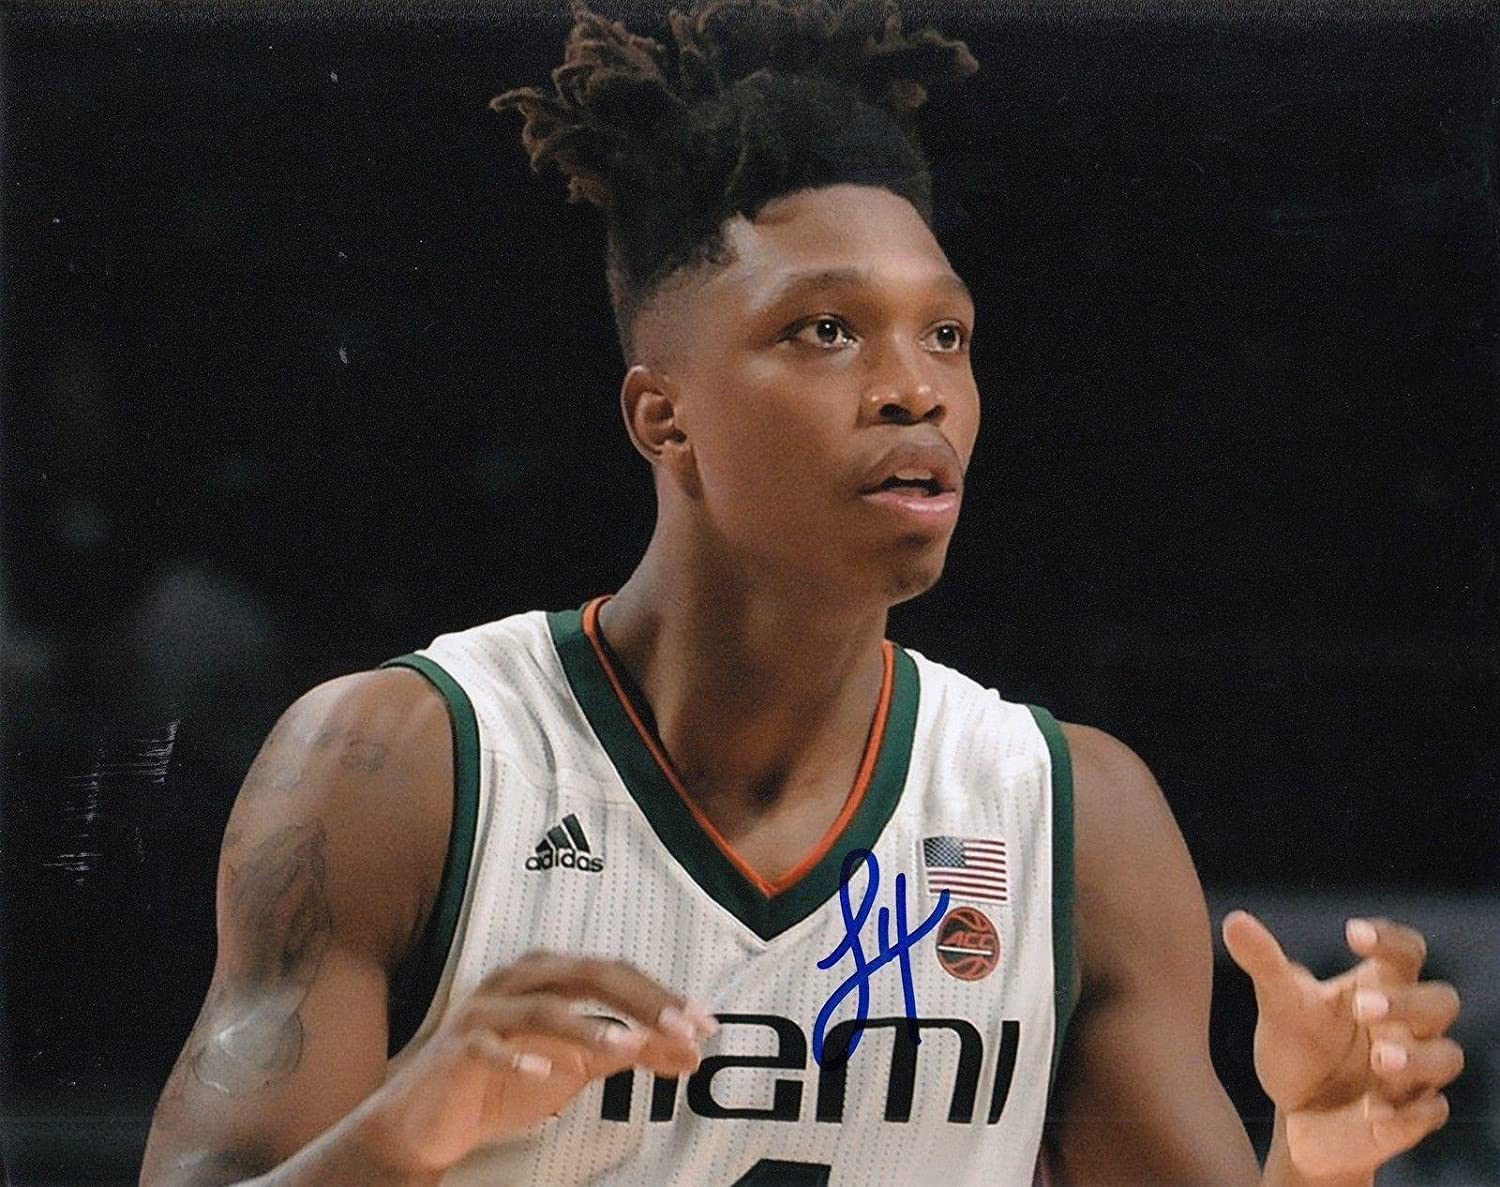 32486c14a LONNIE WALKER signed (MIAMI HURRICANES) basketball 8X10 photo  PROOF  W COA   2 - Autographed College Photos at Amazon s Sports Collectibles Store